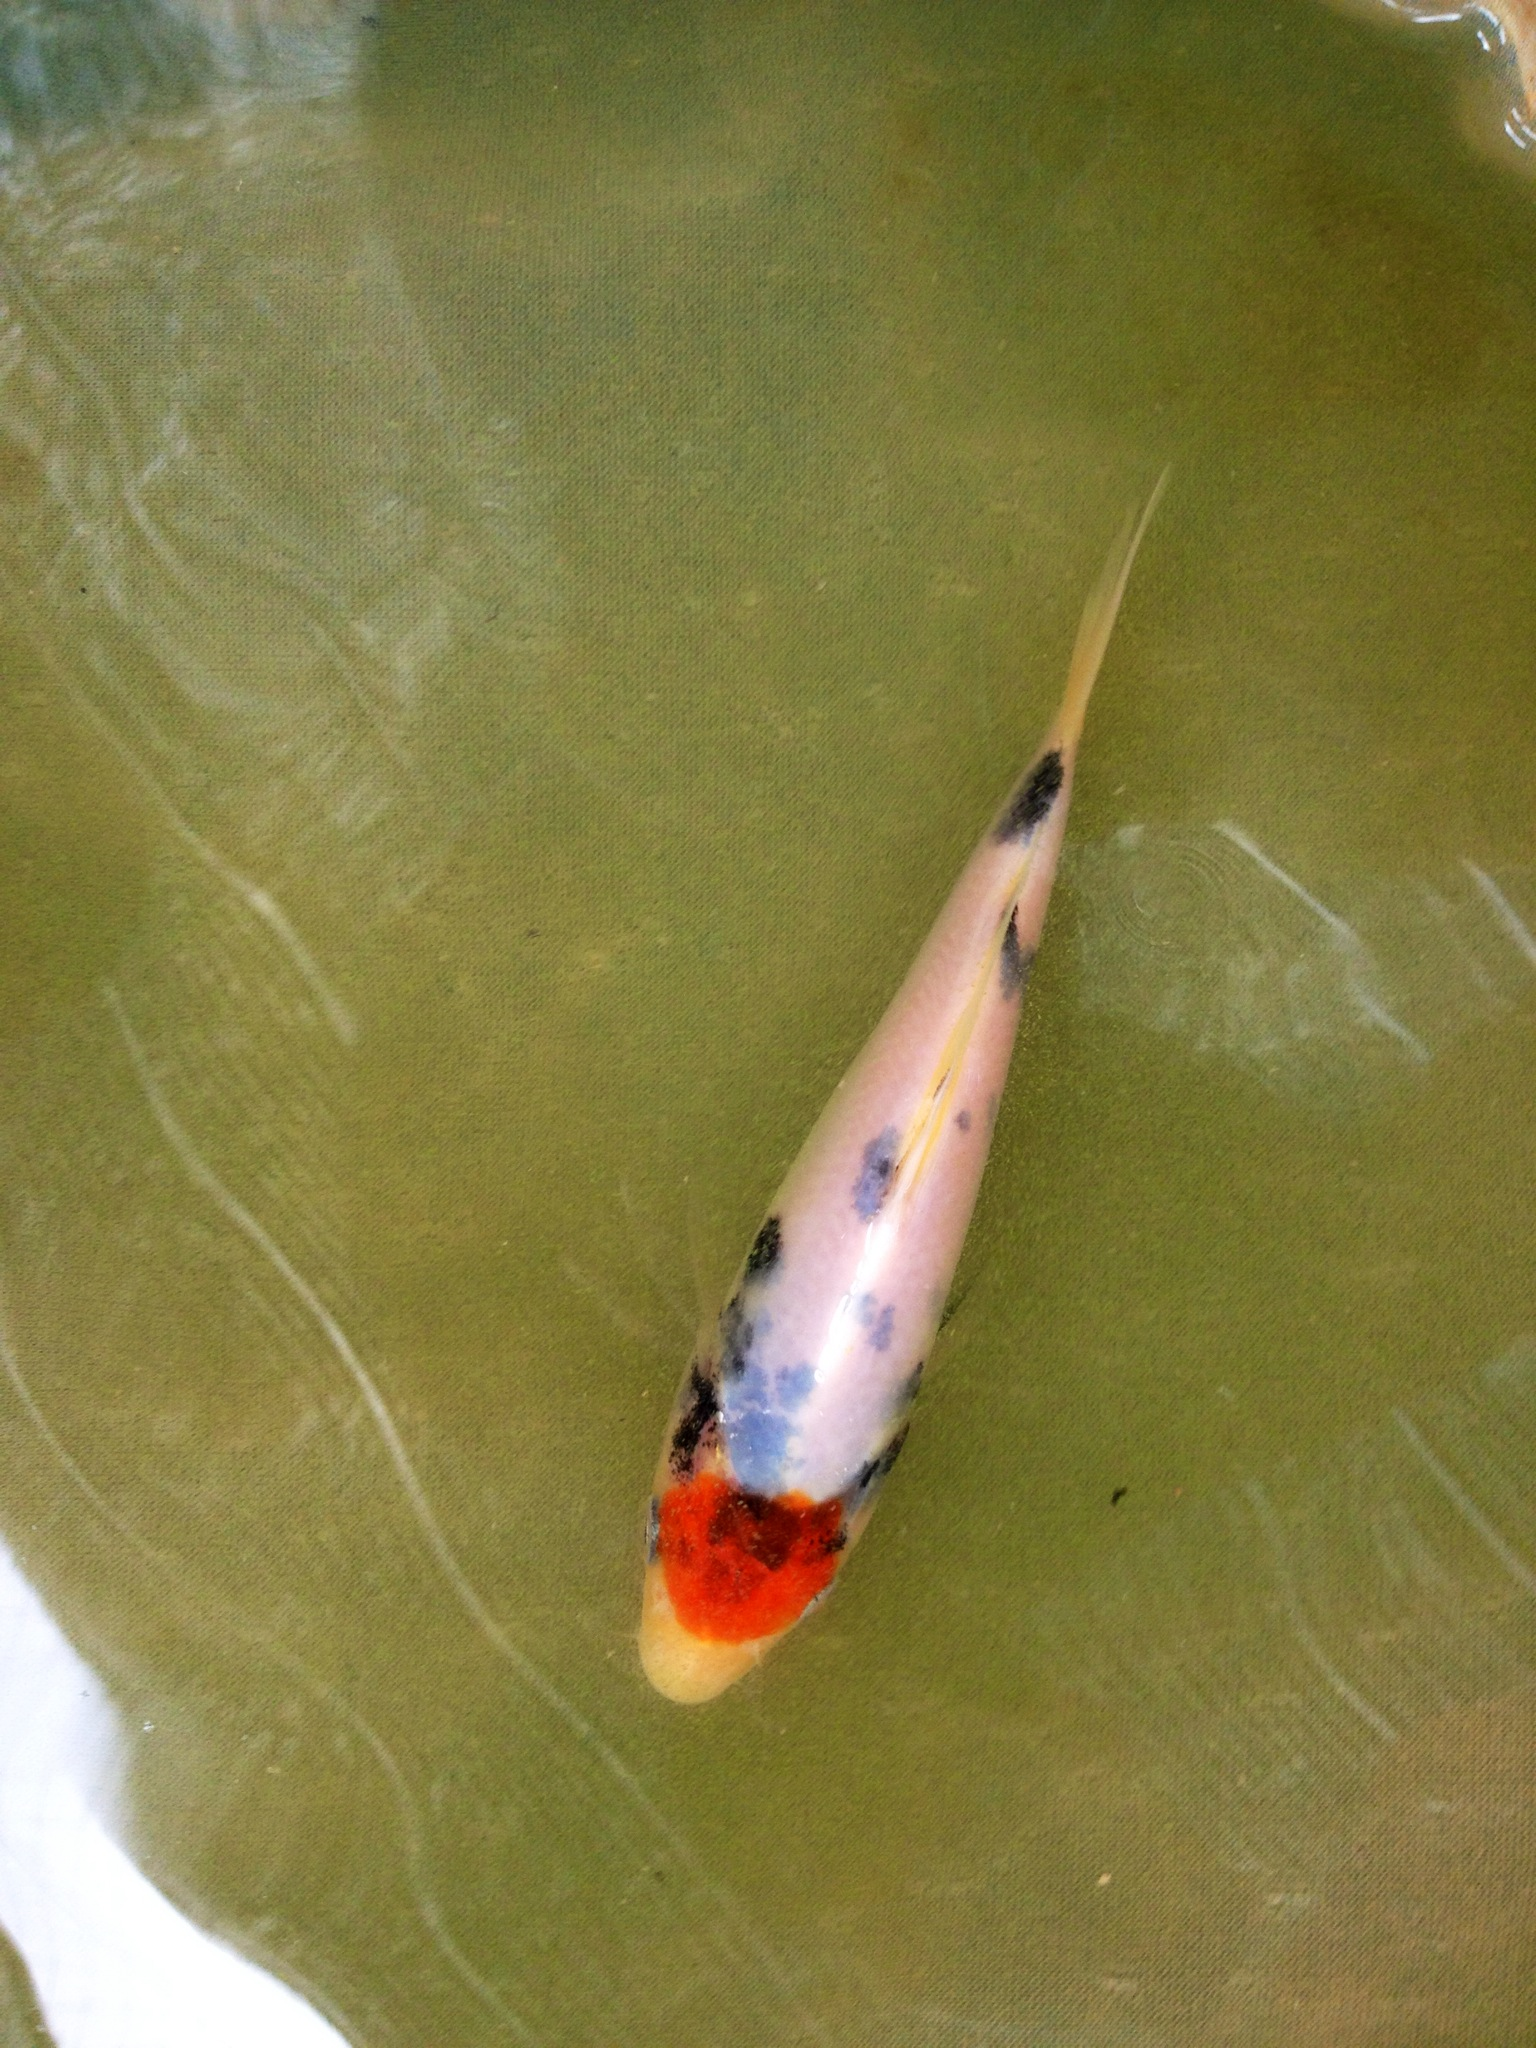 Baby koi fries marugen koi farm for Baby koi carp